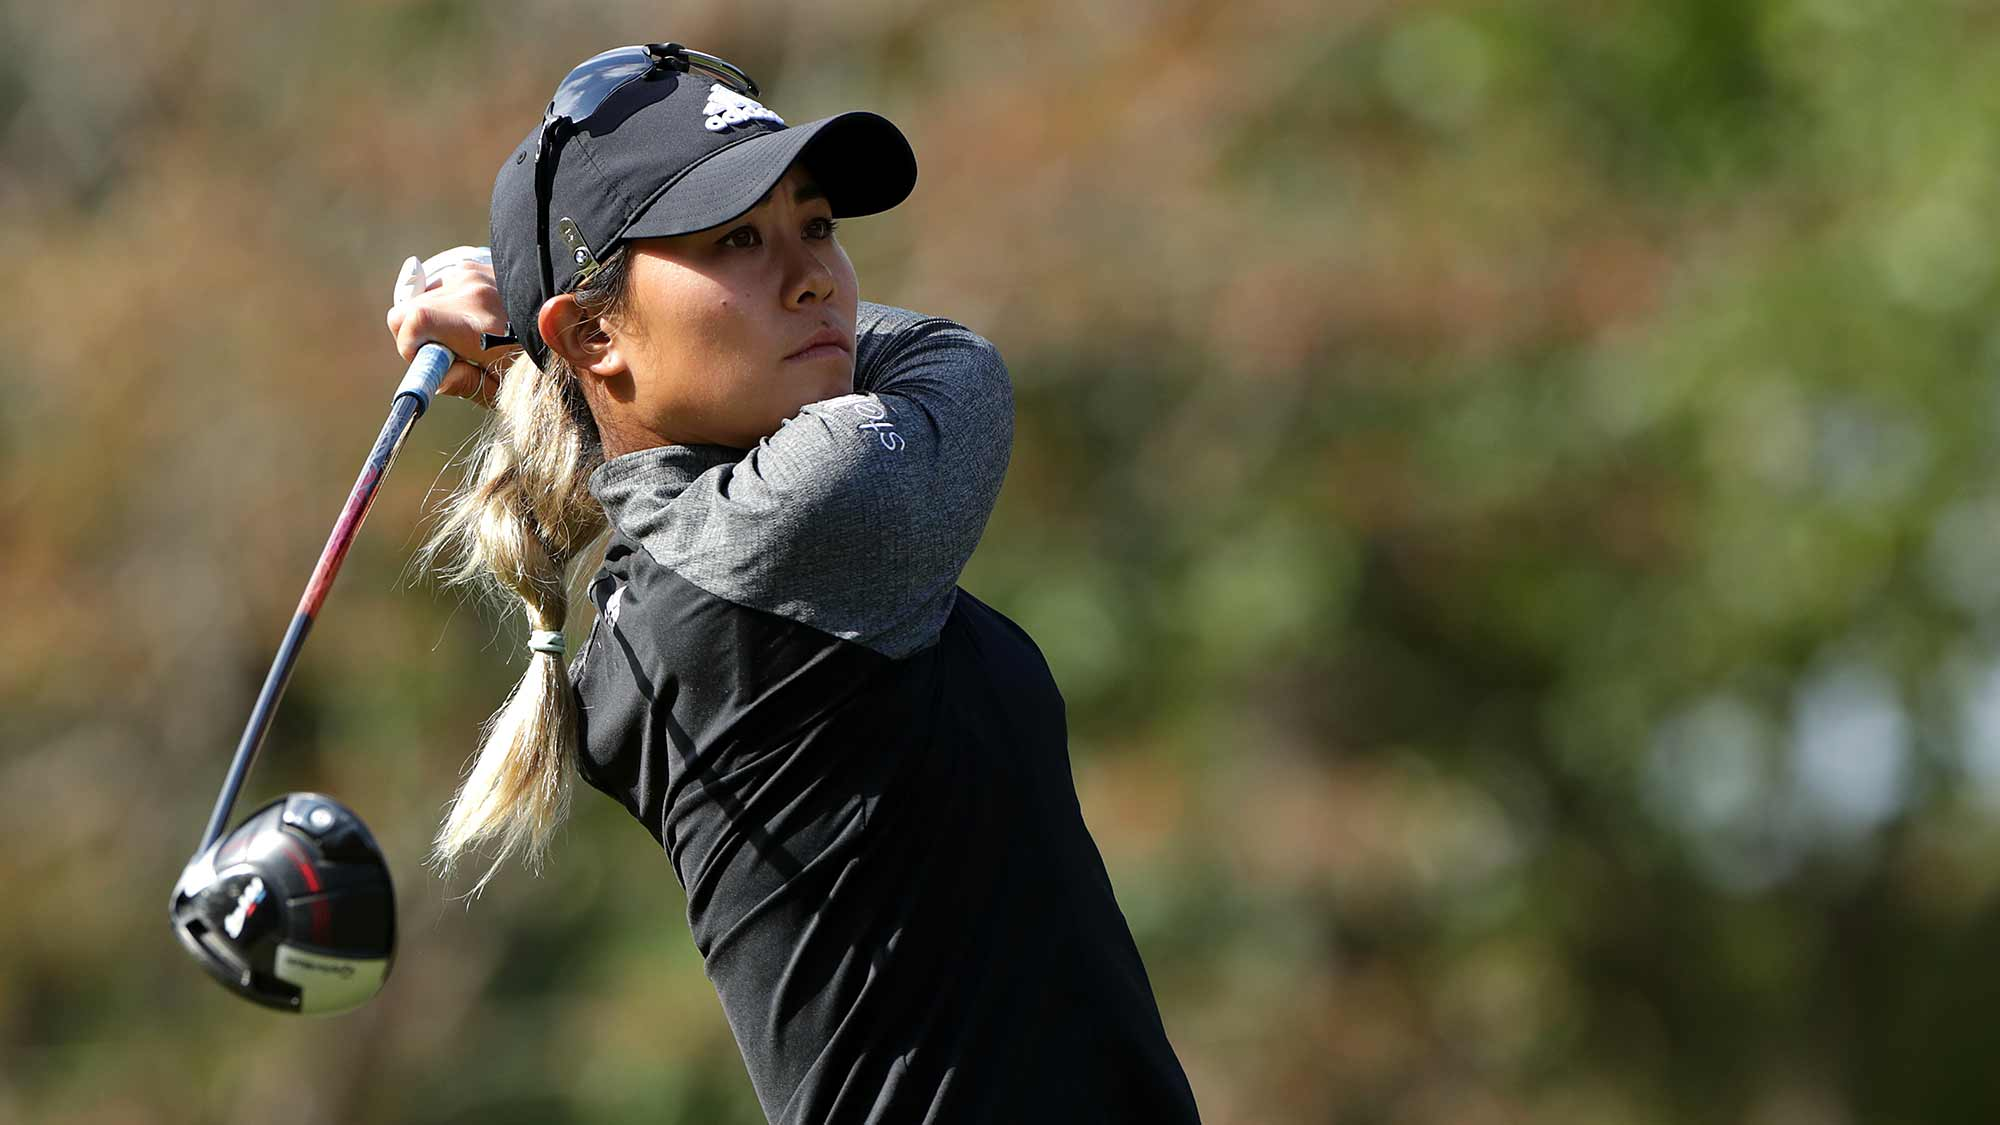 Danielle Kang of USA drives from a tee on the second hole during Round 2 of 2019 BMW Ladies Championship at LPGA International Busan on October 25, 2019 in Busan, Republic of Korea